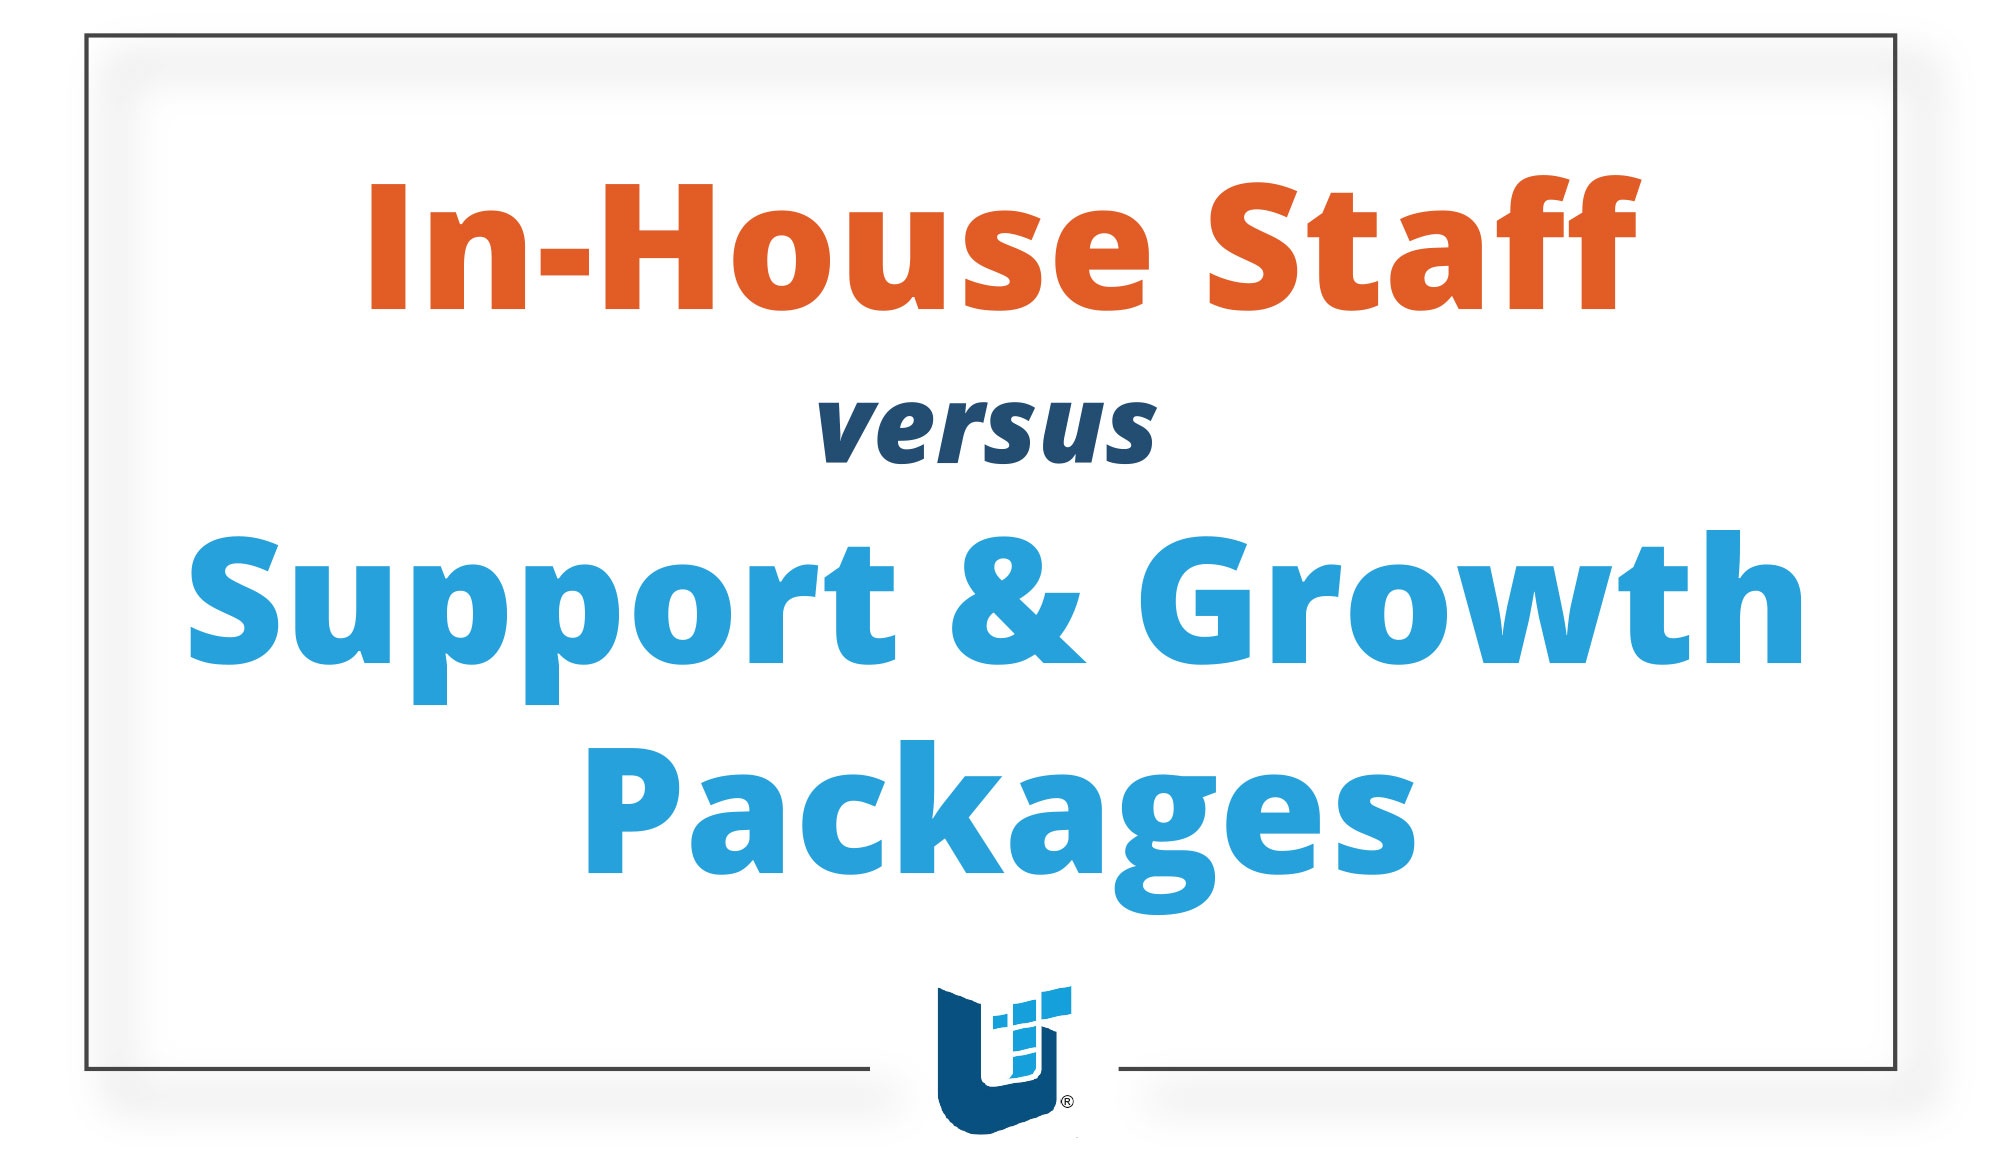 Support & Growth Packages vs. In-House Staff